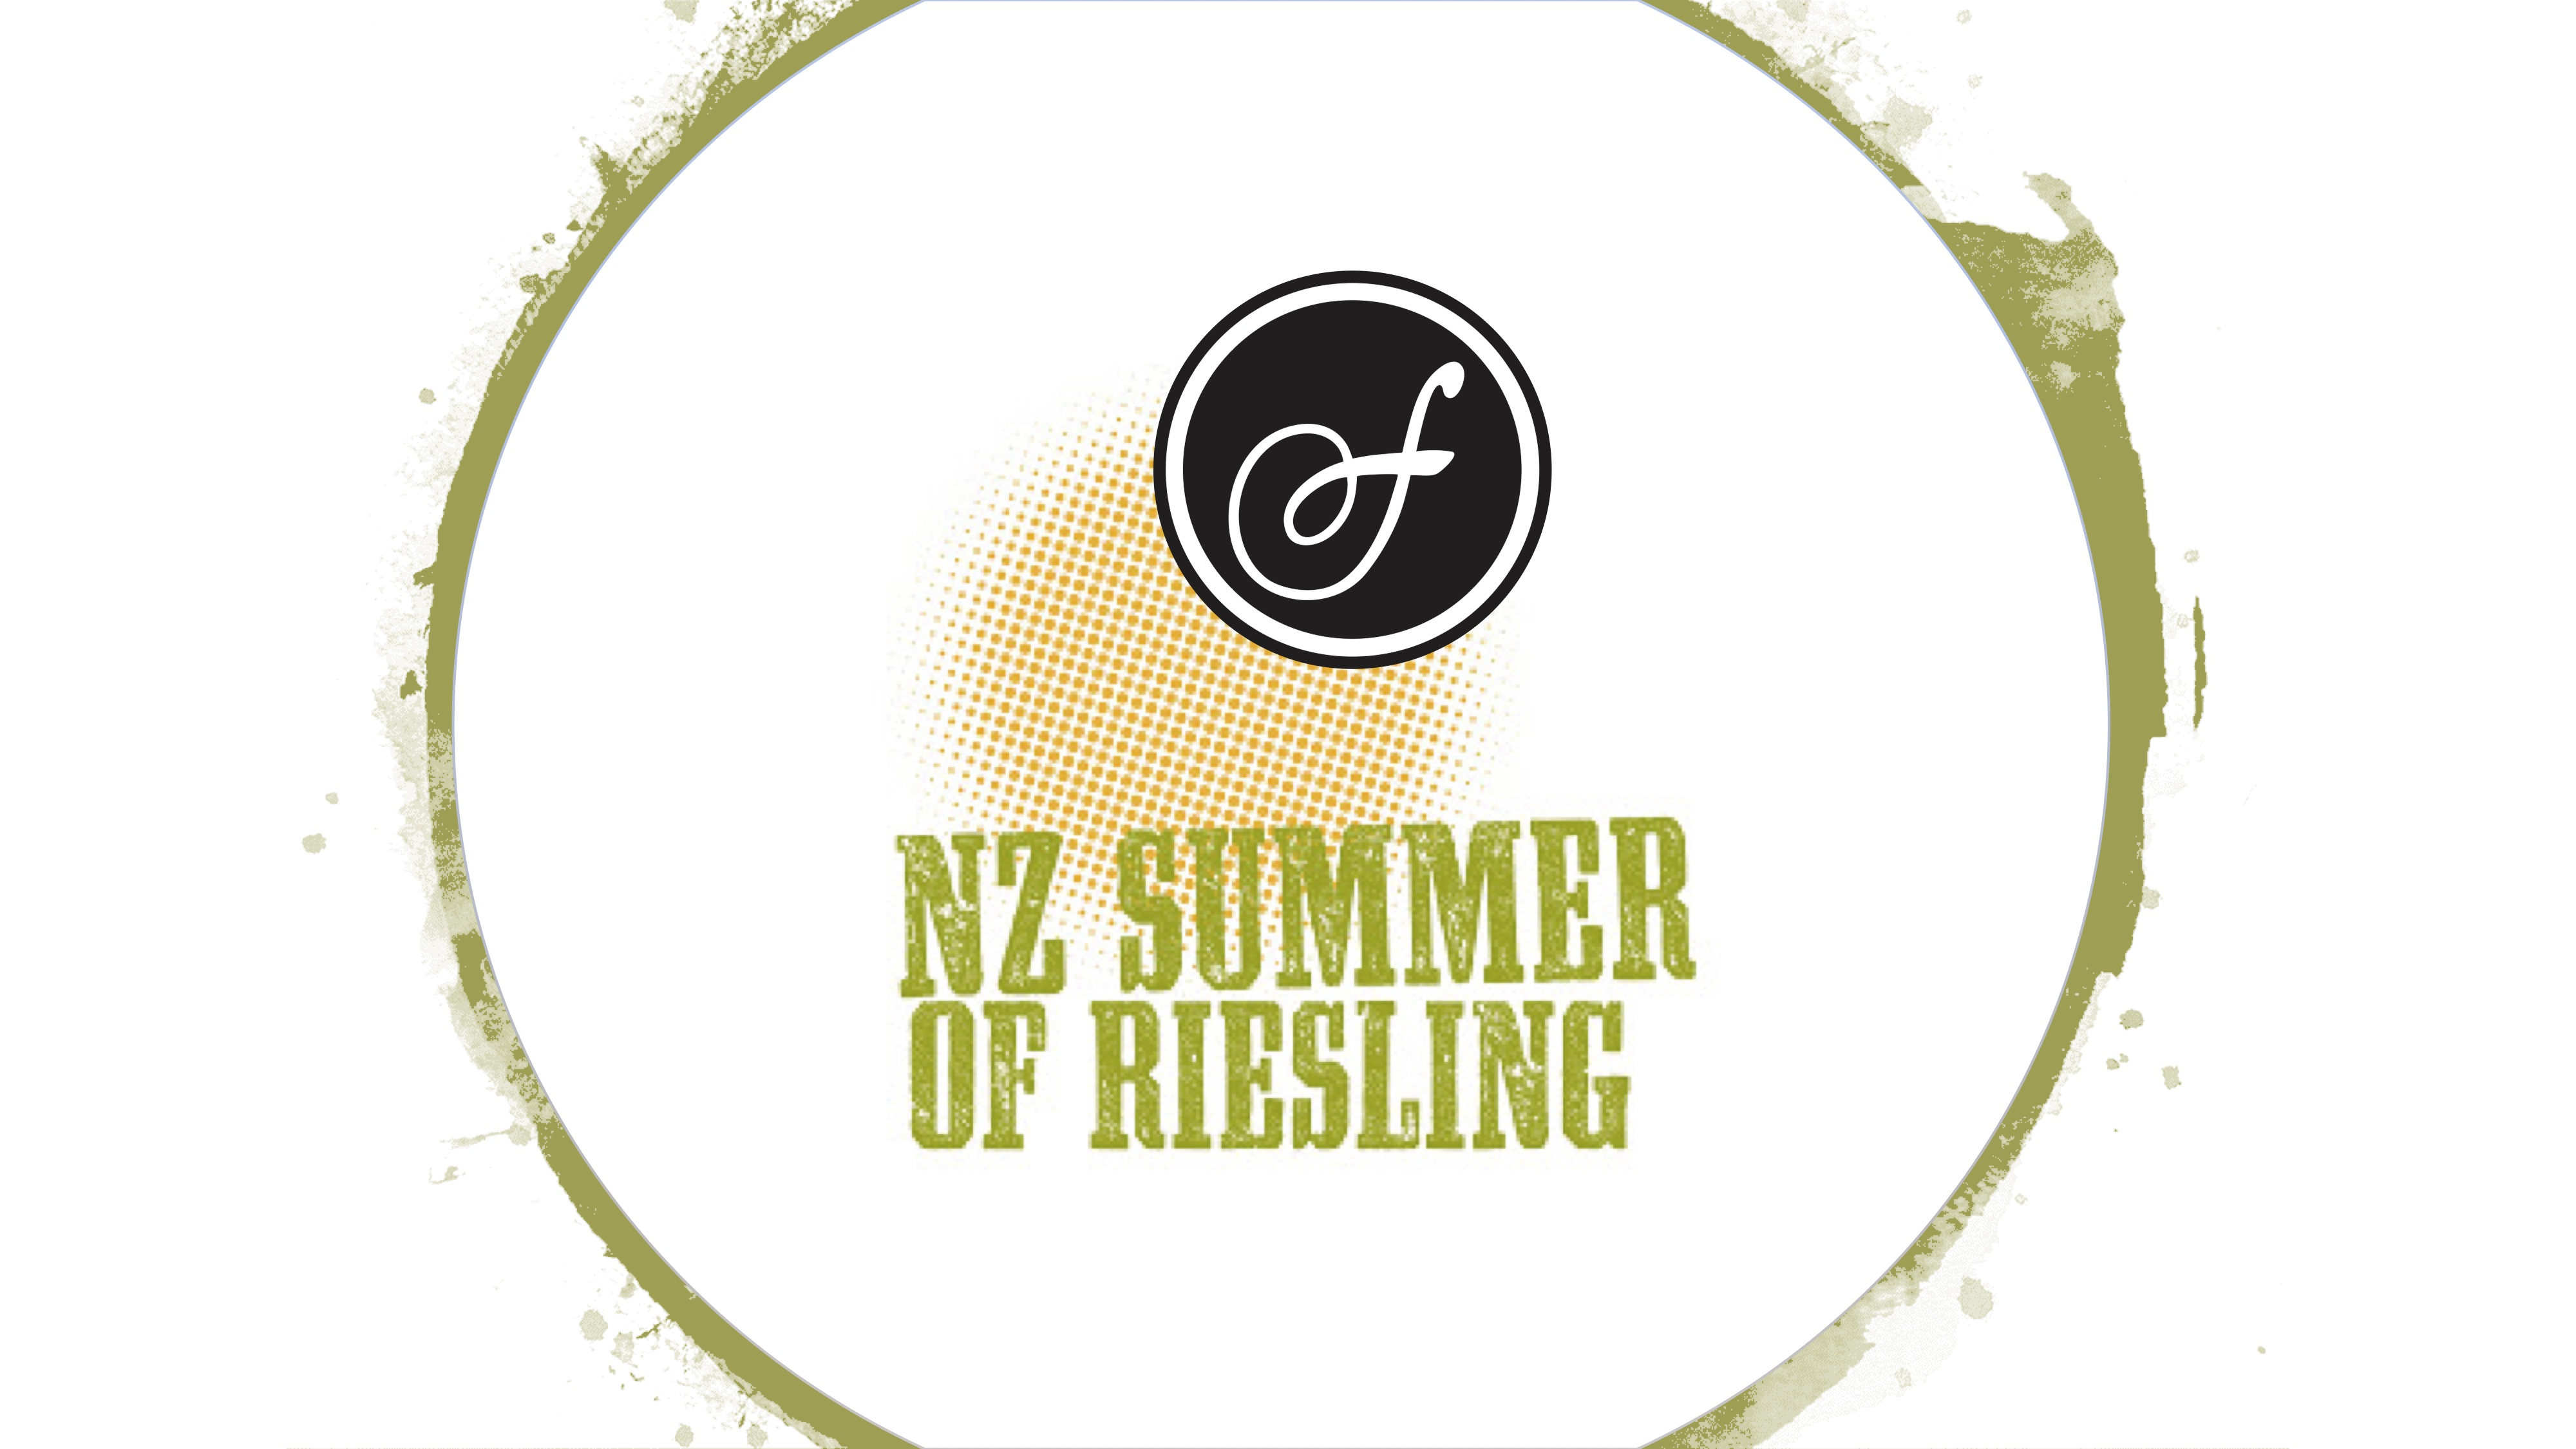 Foxes Island Summer of Riesling